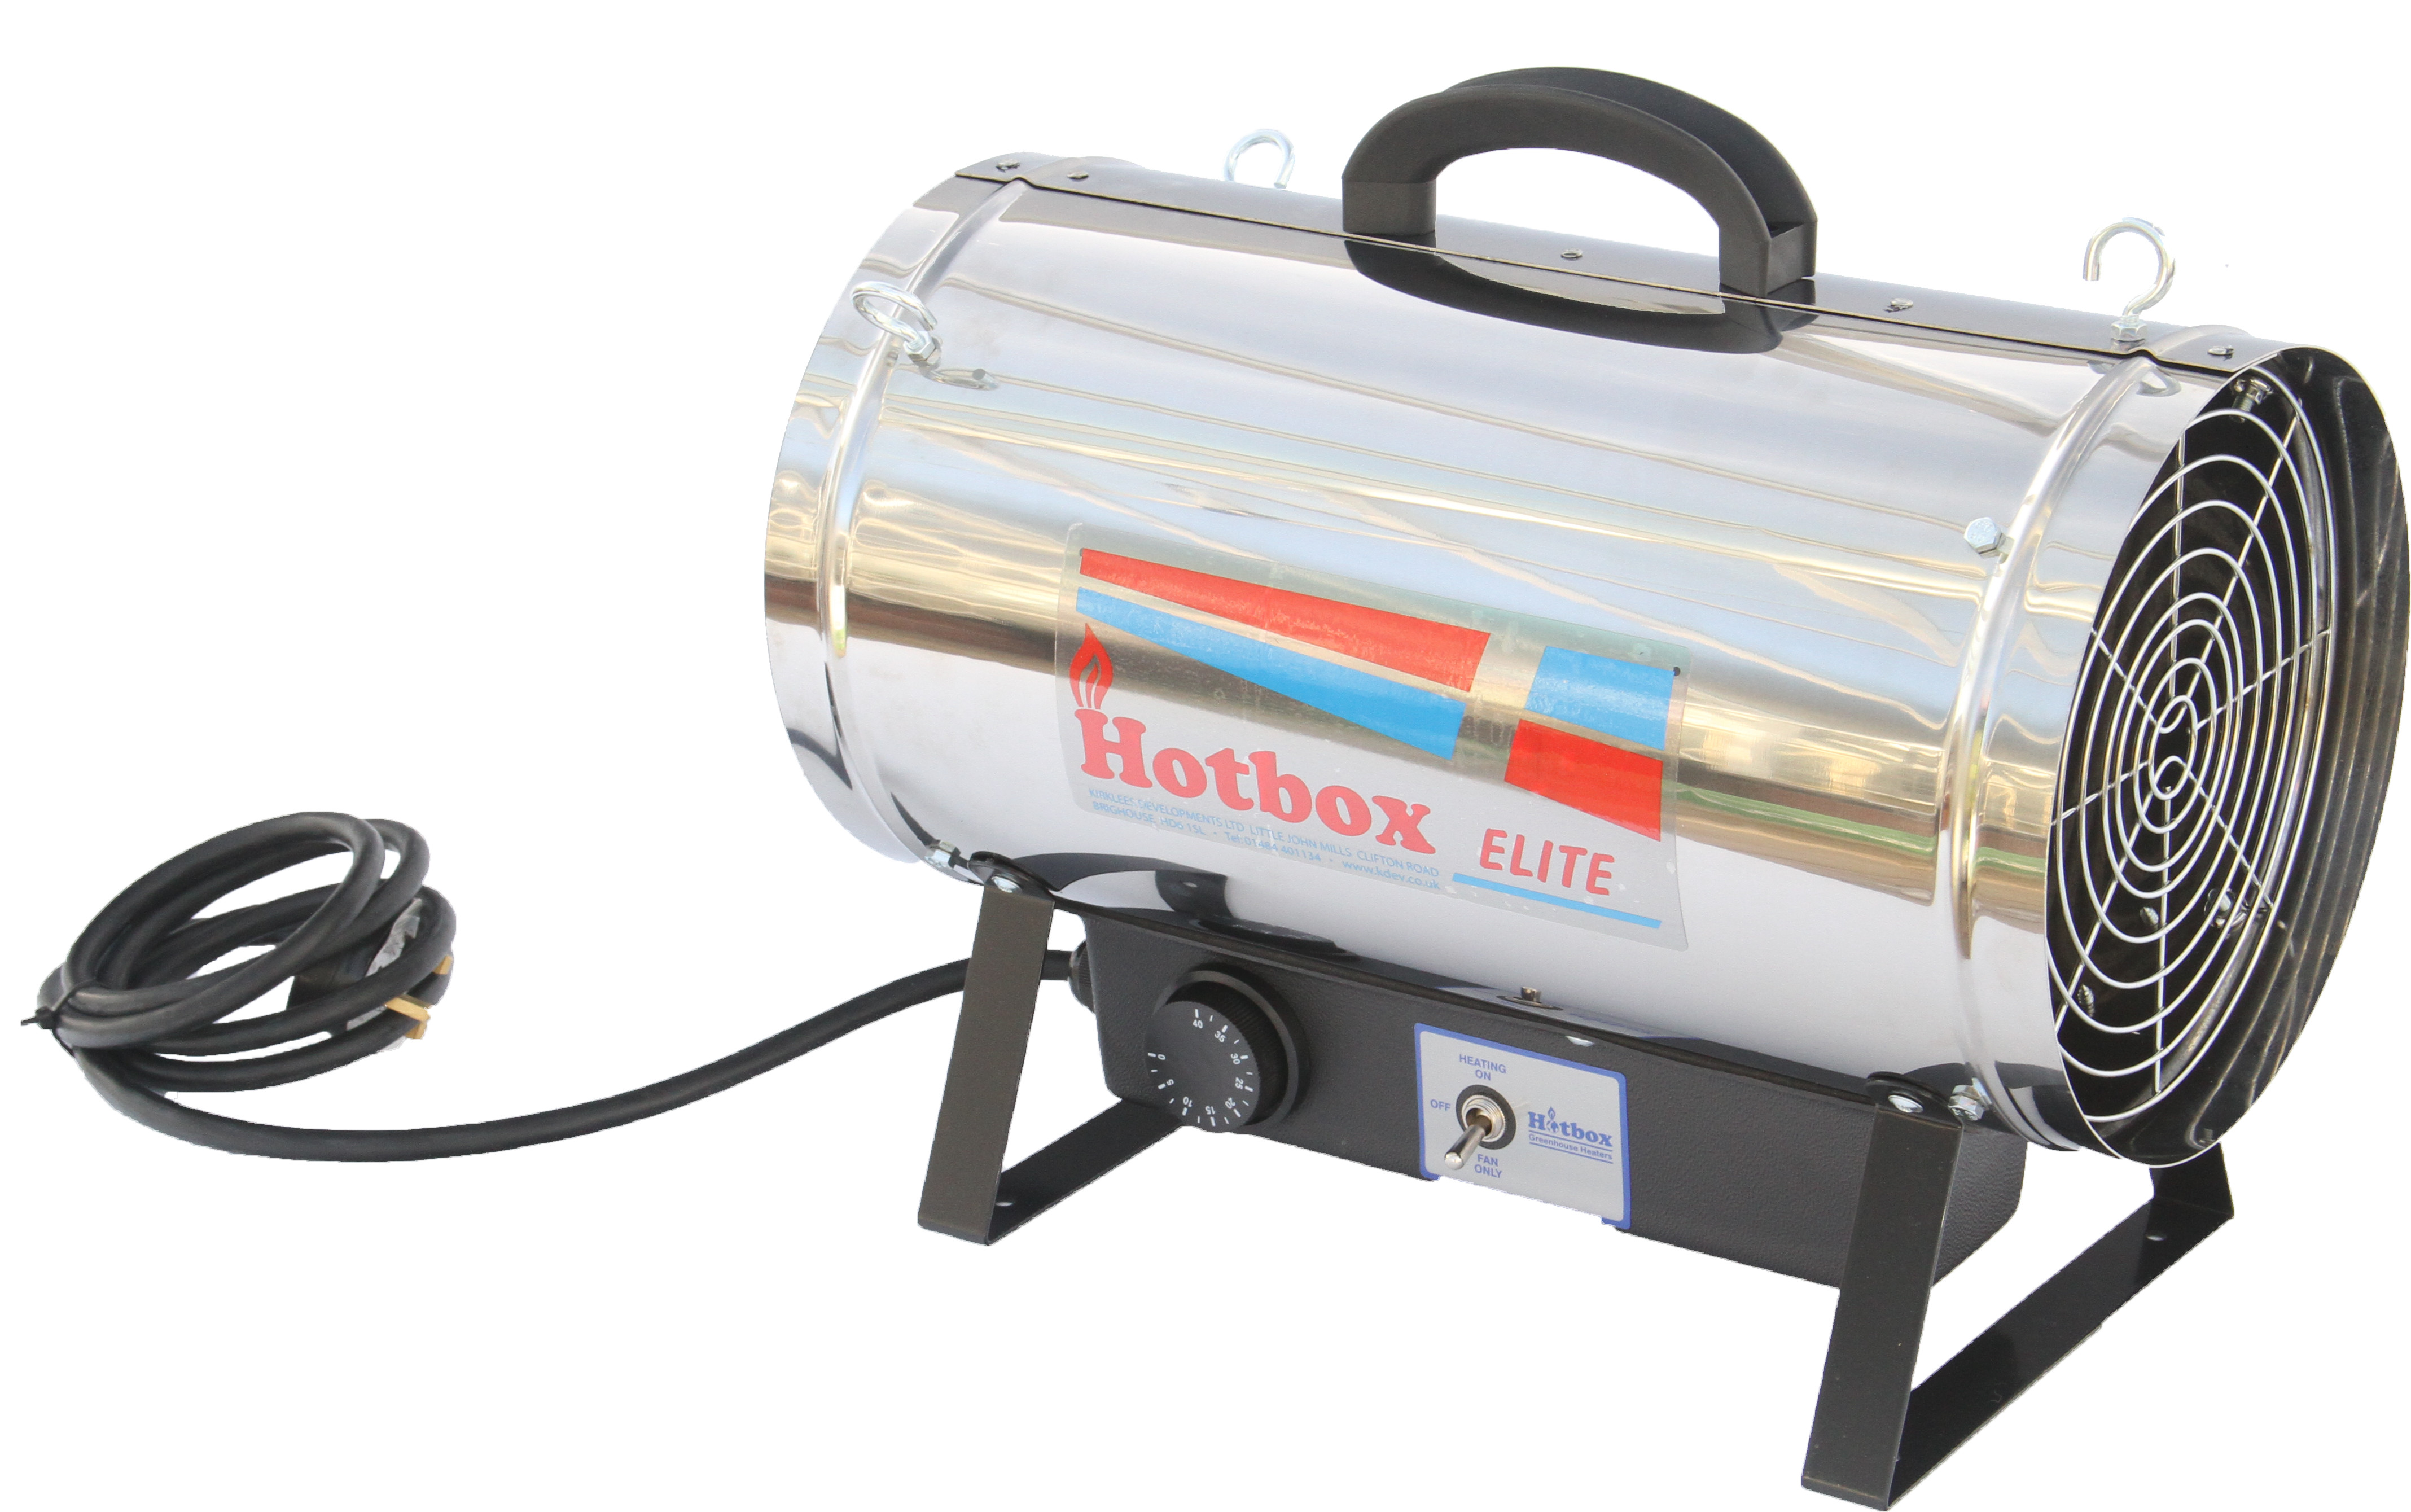 Hotbox Elite 2.8Kw Greenhouse Heater